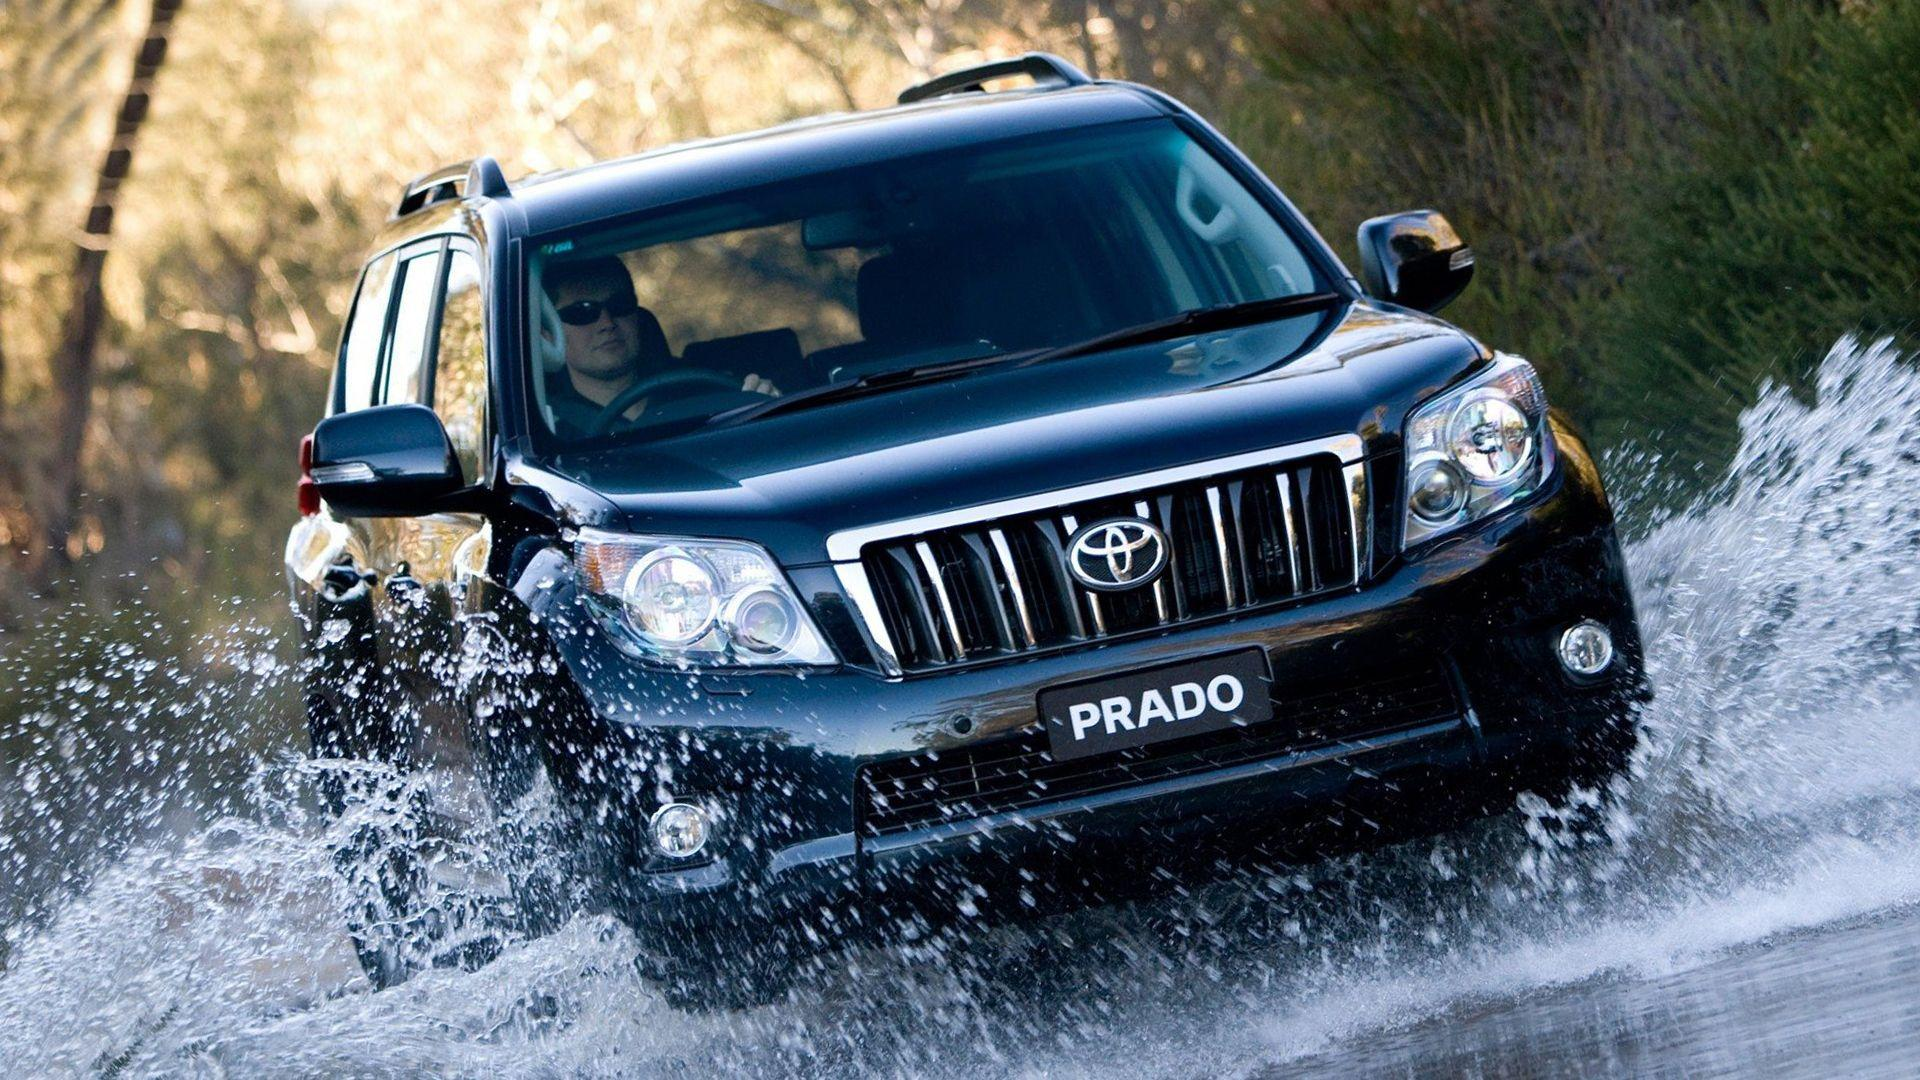 Toyota Land Cruiser Prado Wallpapers Wallpaper Cave